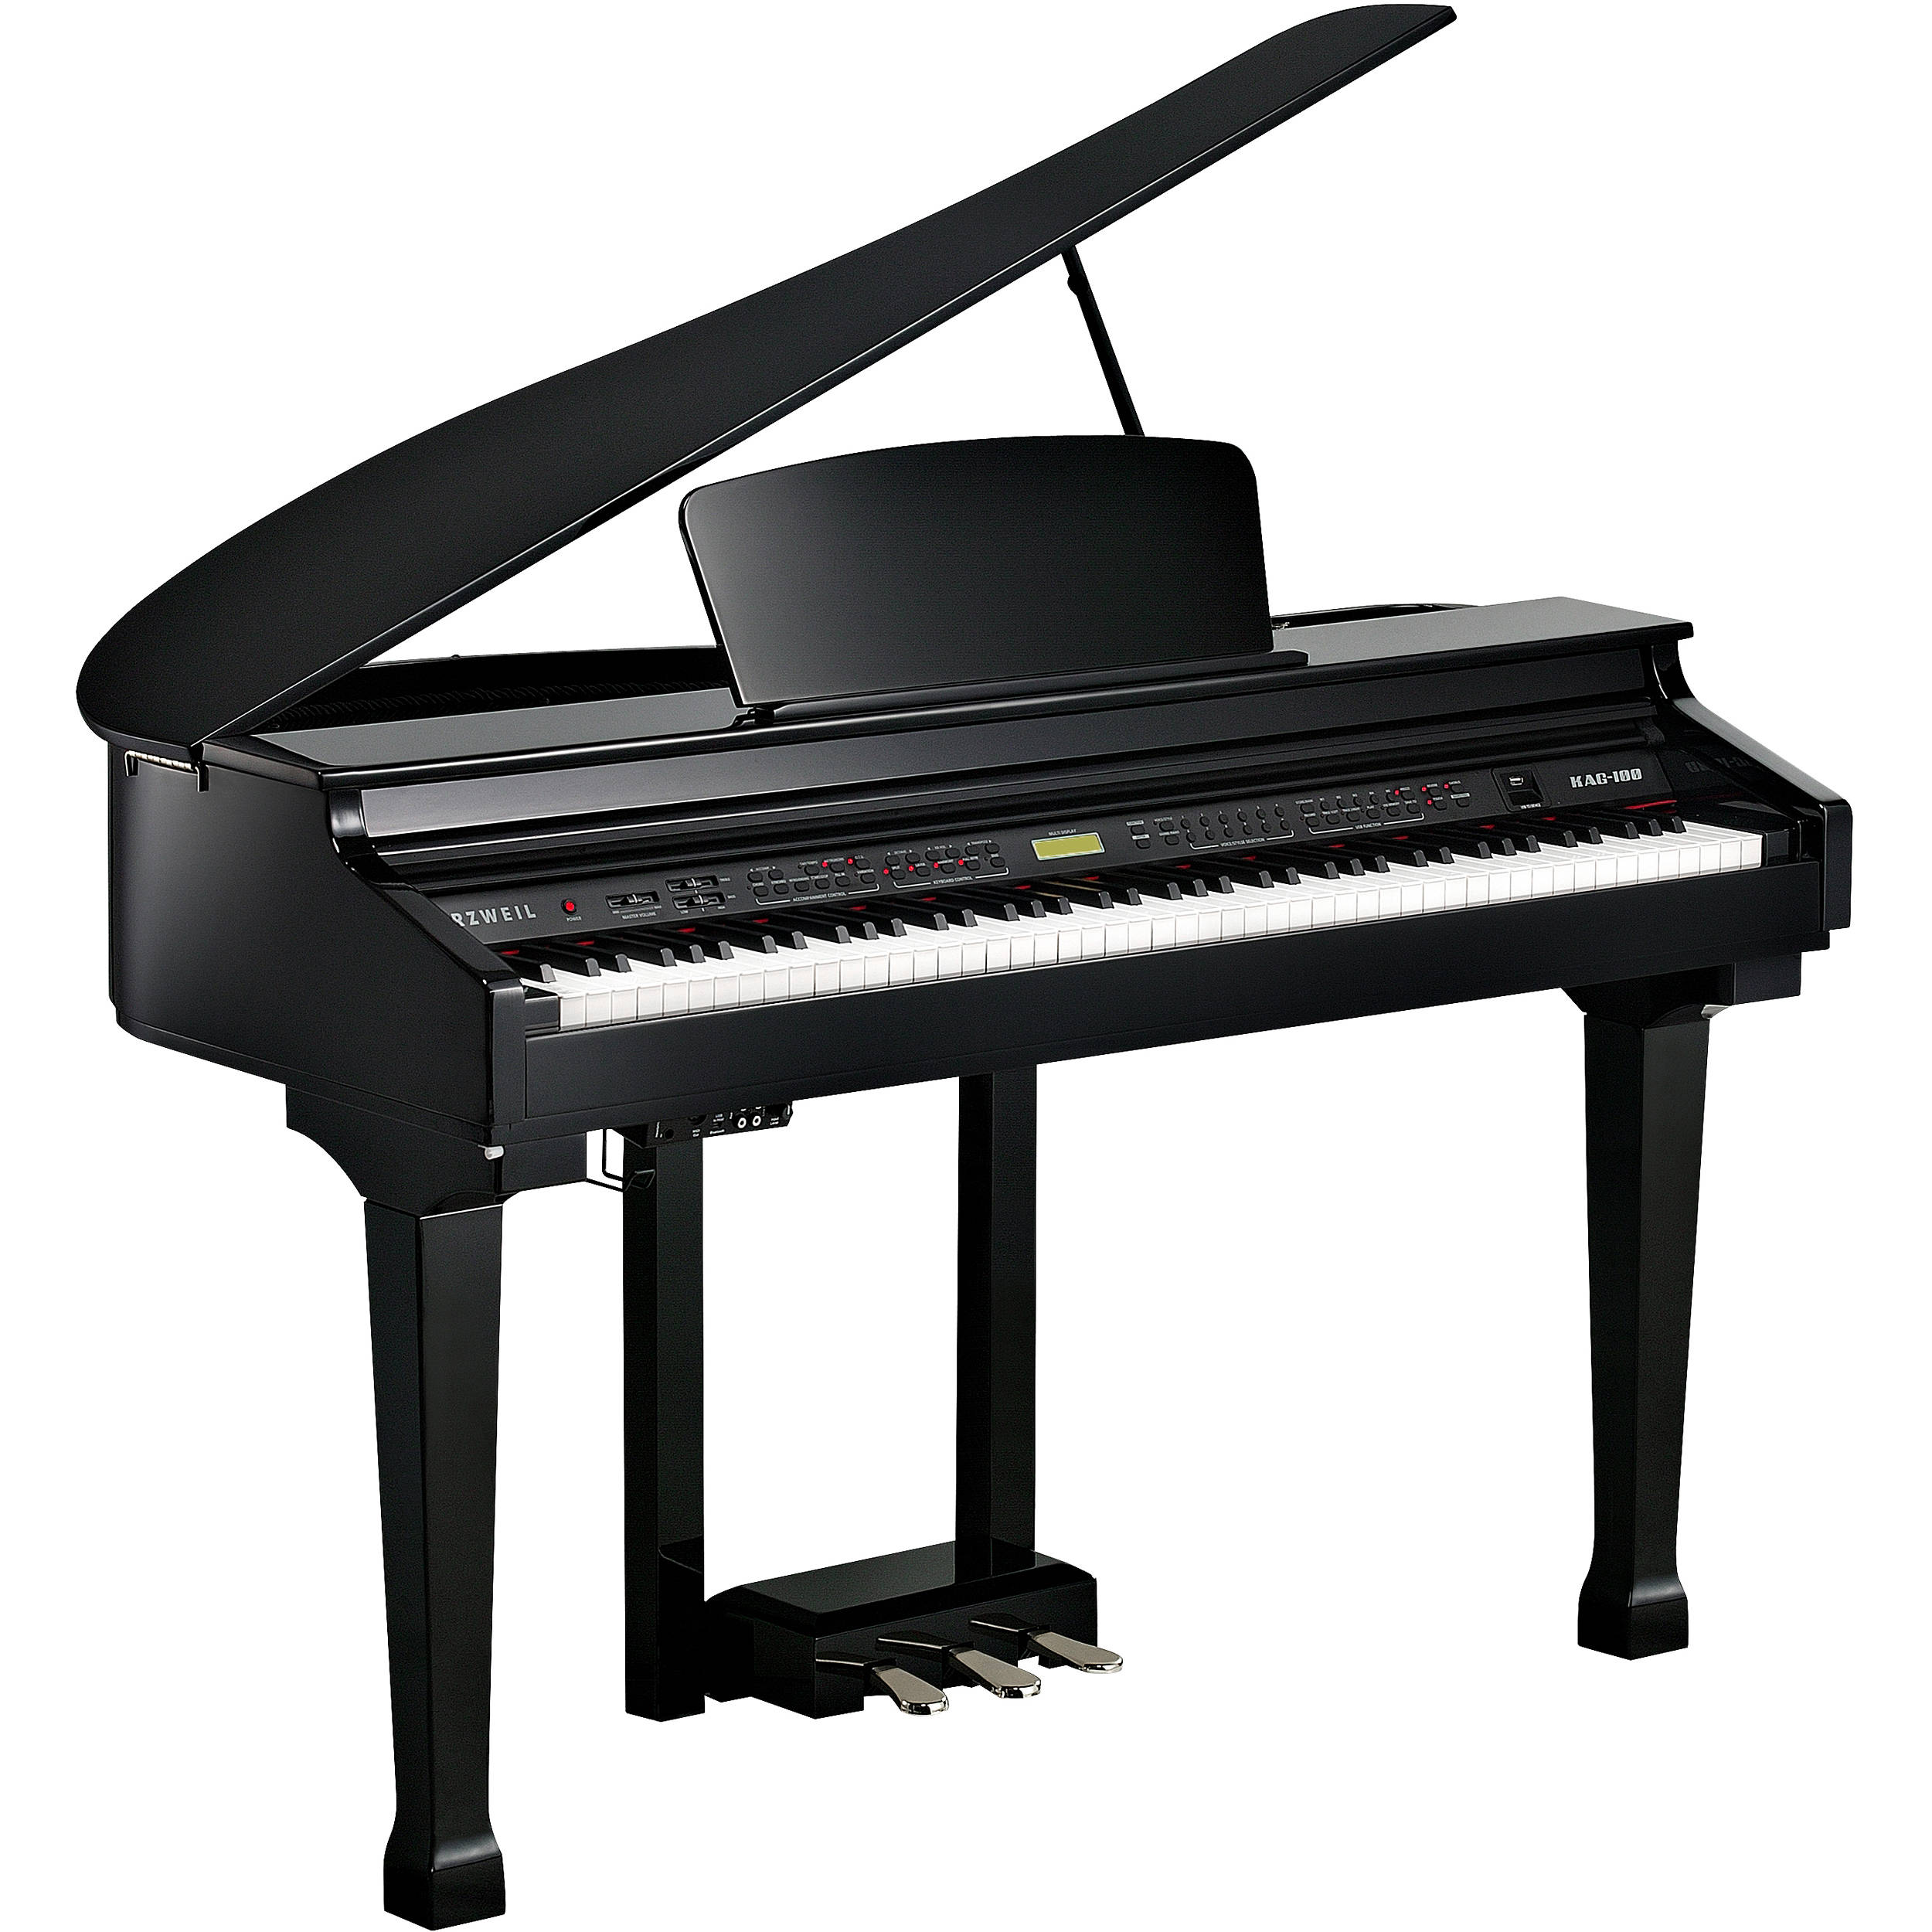 Kurzweil kag 100 digital mini size baby grand piano kag Size of baby grand piano